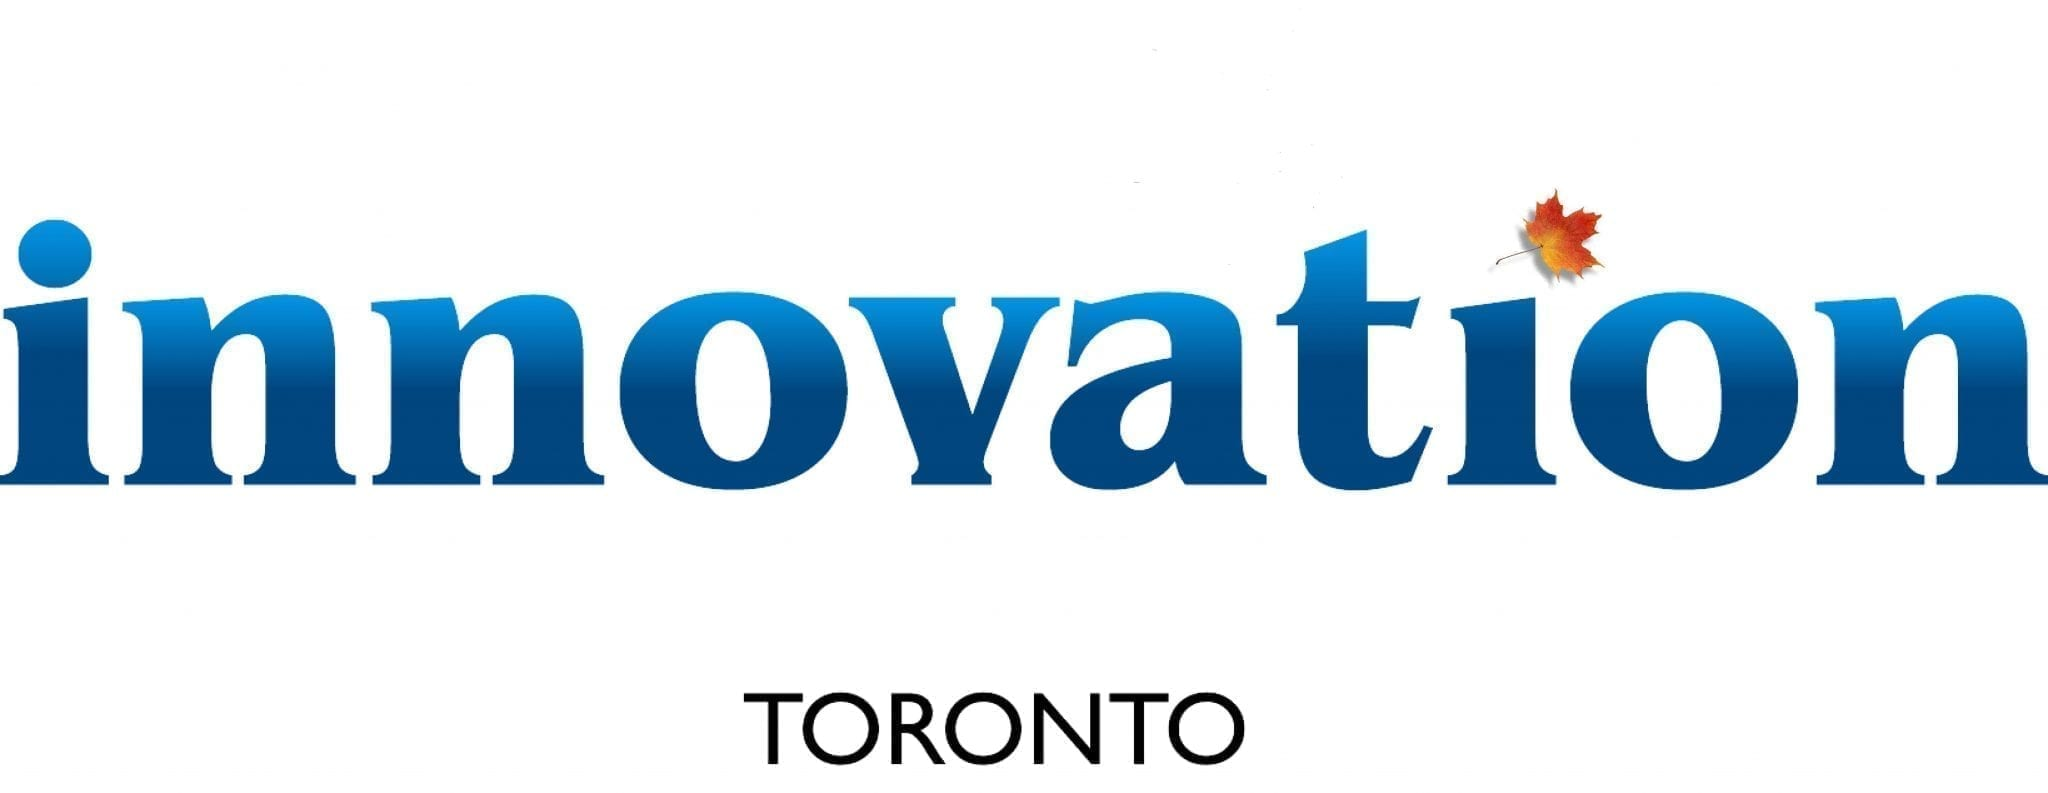 Innovation toronto 30 innovation toronto we want to thank everyone for your support and interest over the past 5 years this is our 5th anniversary so it is time for a functionality upgrade thecheapjerseys Gallery